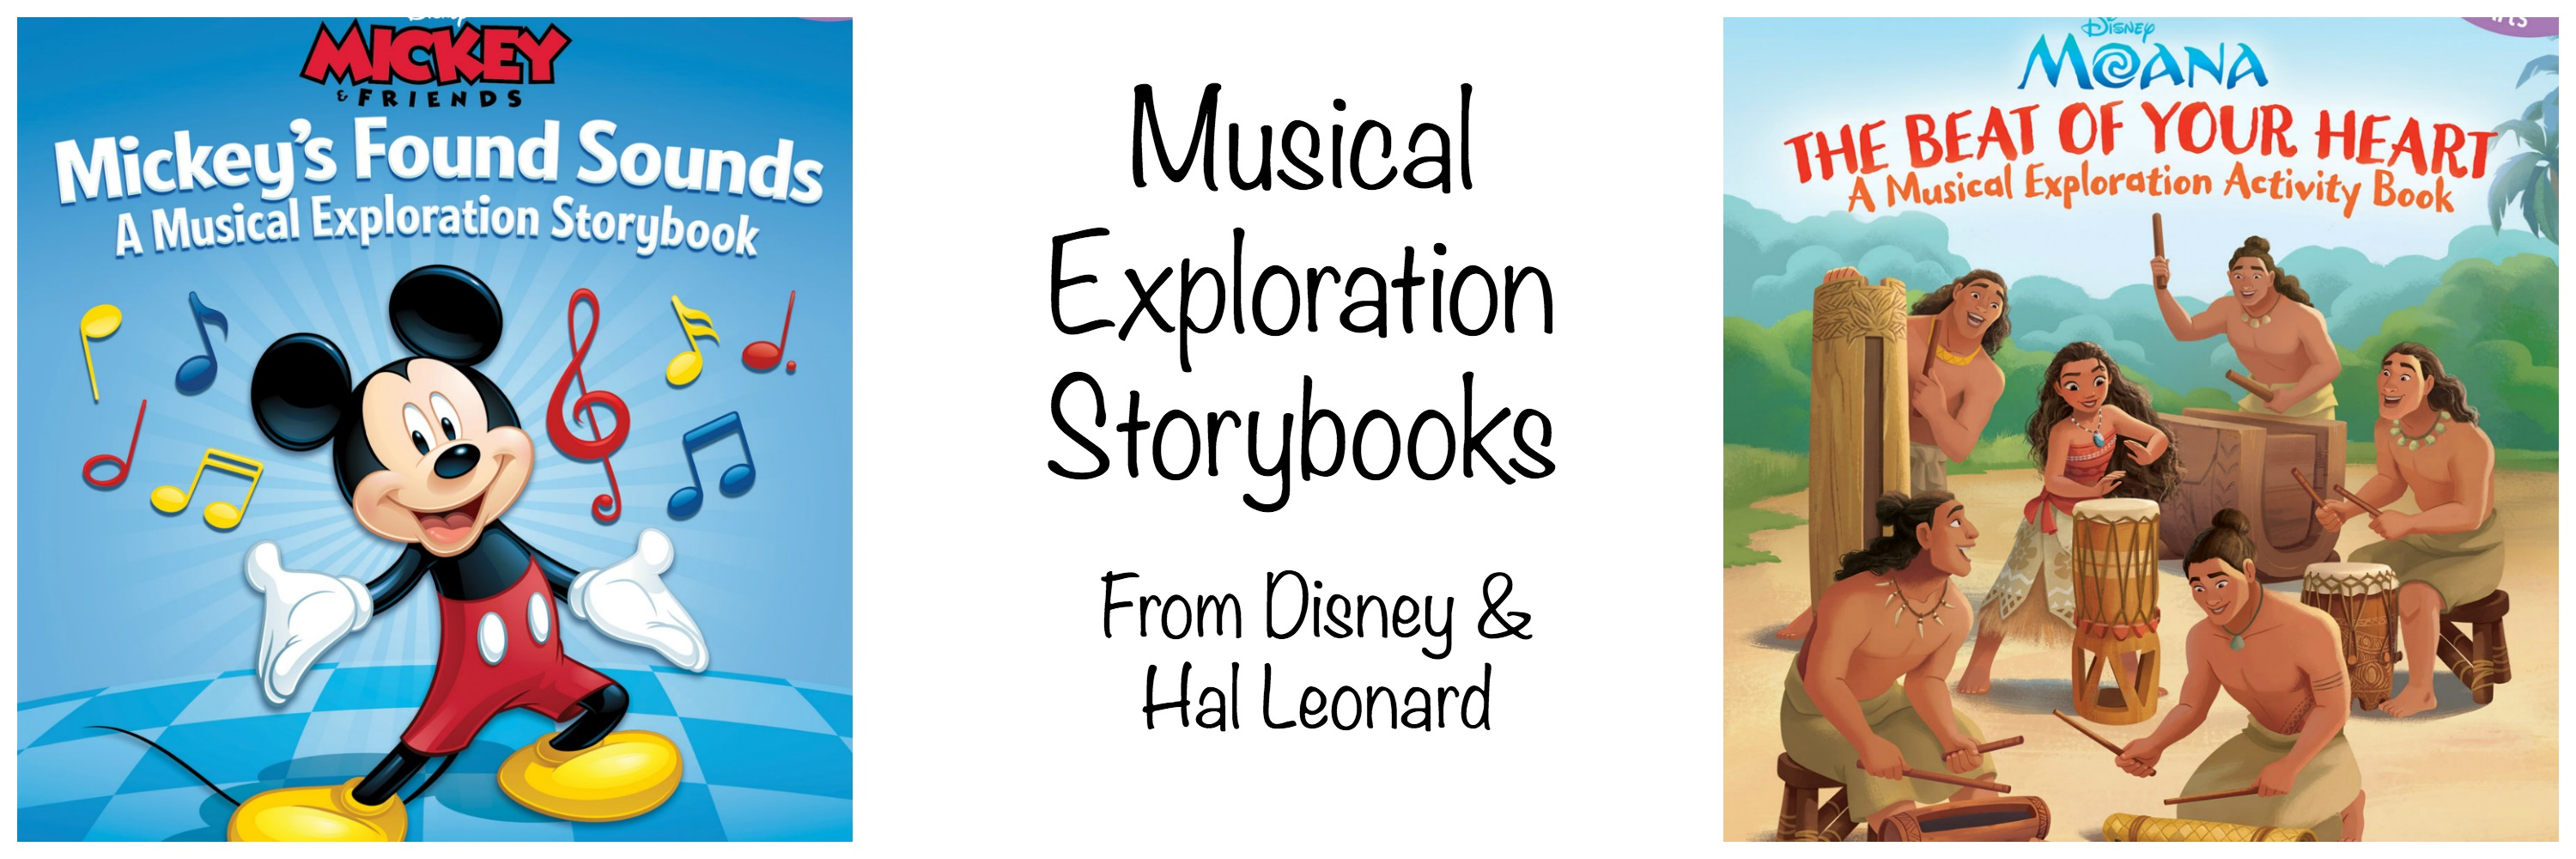 Disney Musical Exploration Storybooks Learn Music With